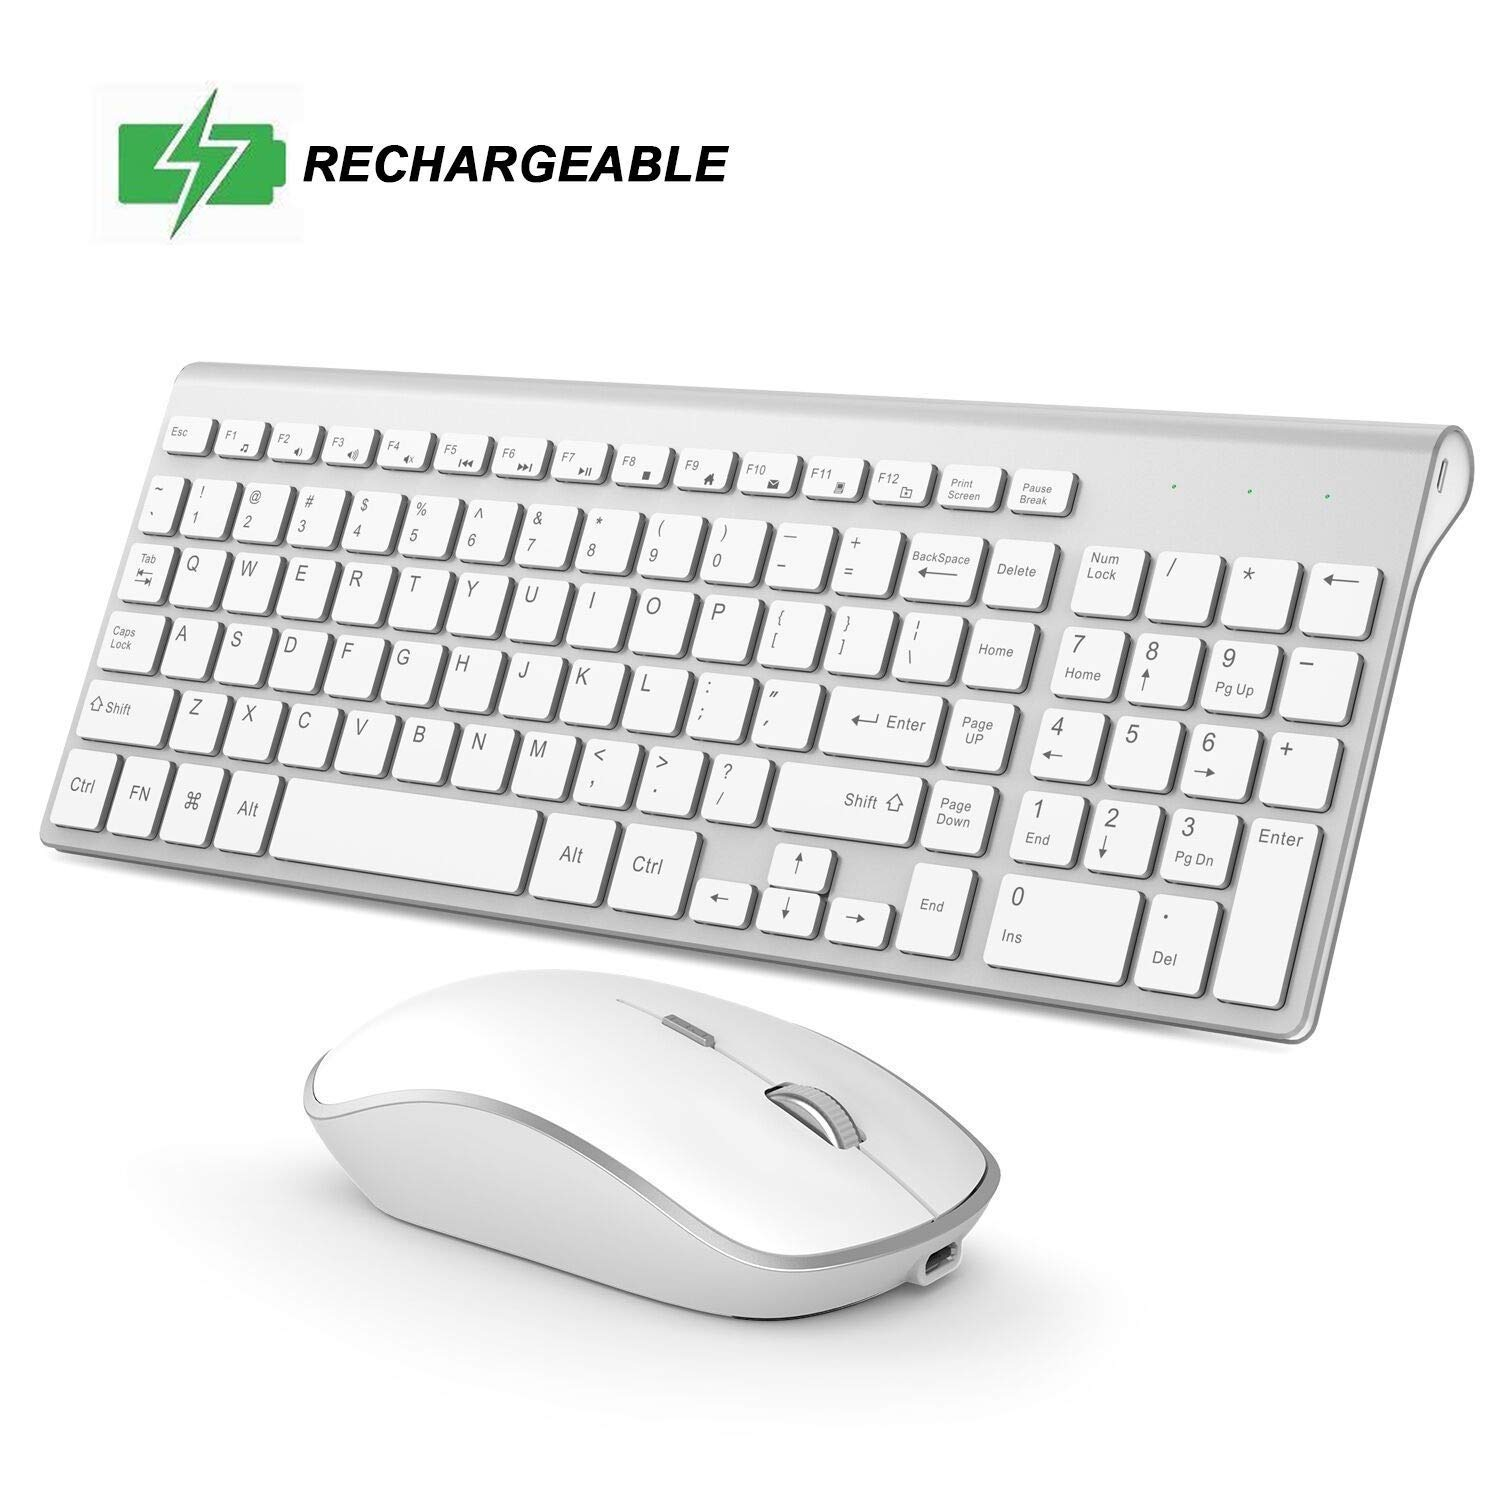 Ergonomic,Compact Rechargeable Wireless Keyboard Mouse 2.4G Thin Wireless Computer Keyboard and Mouse Full Size Perfect for Travel-Rosy Gold